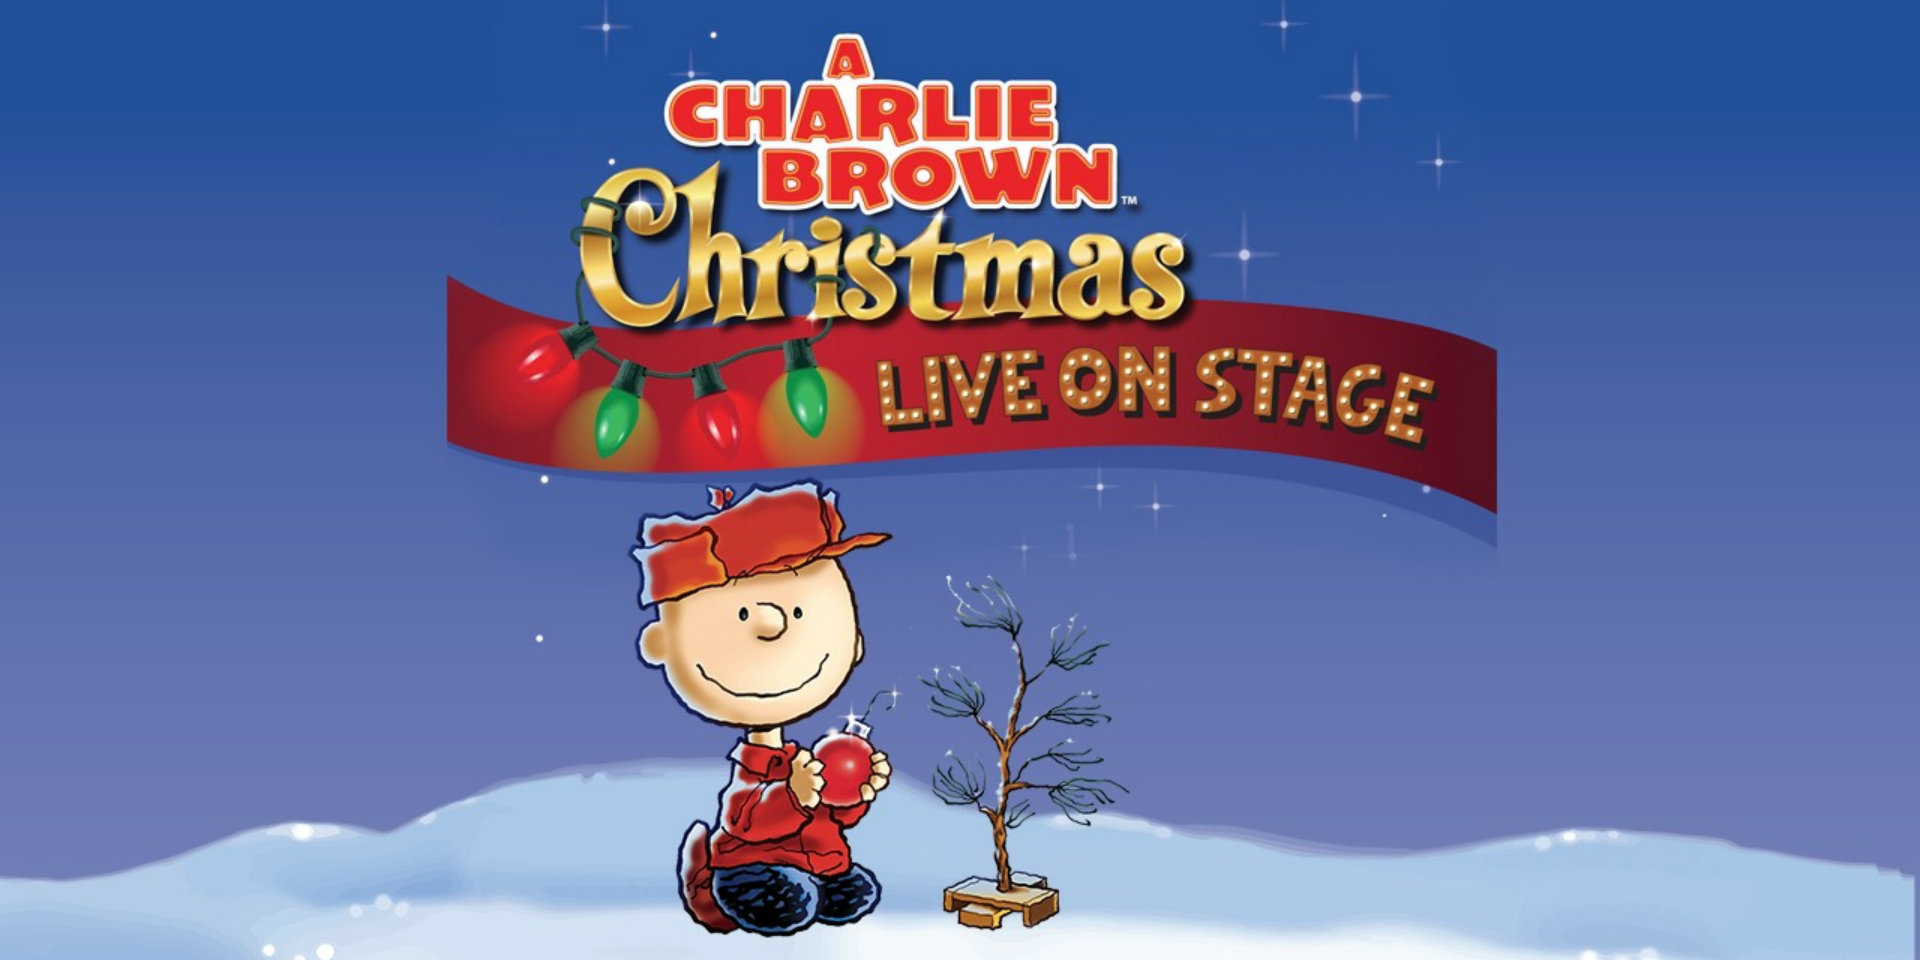 Charlie Brown Christmas Images.A Charlie Brown Christmas Tourism Windsor Essex Pelee Island